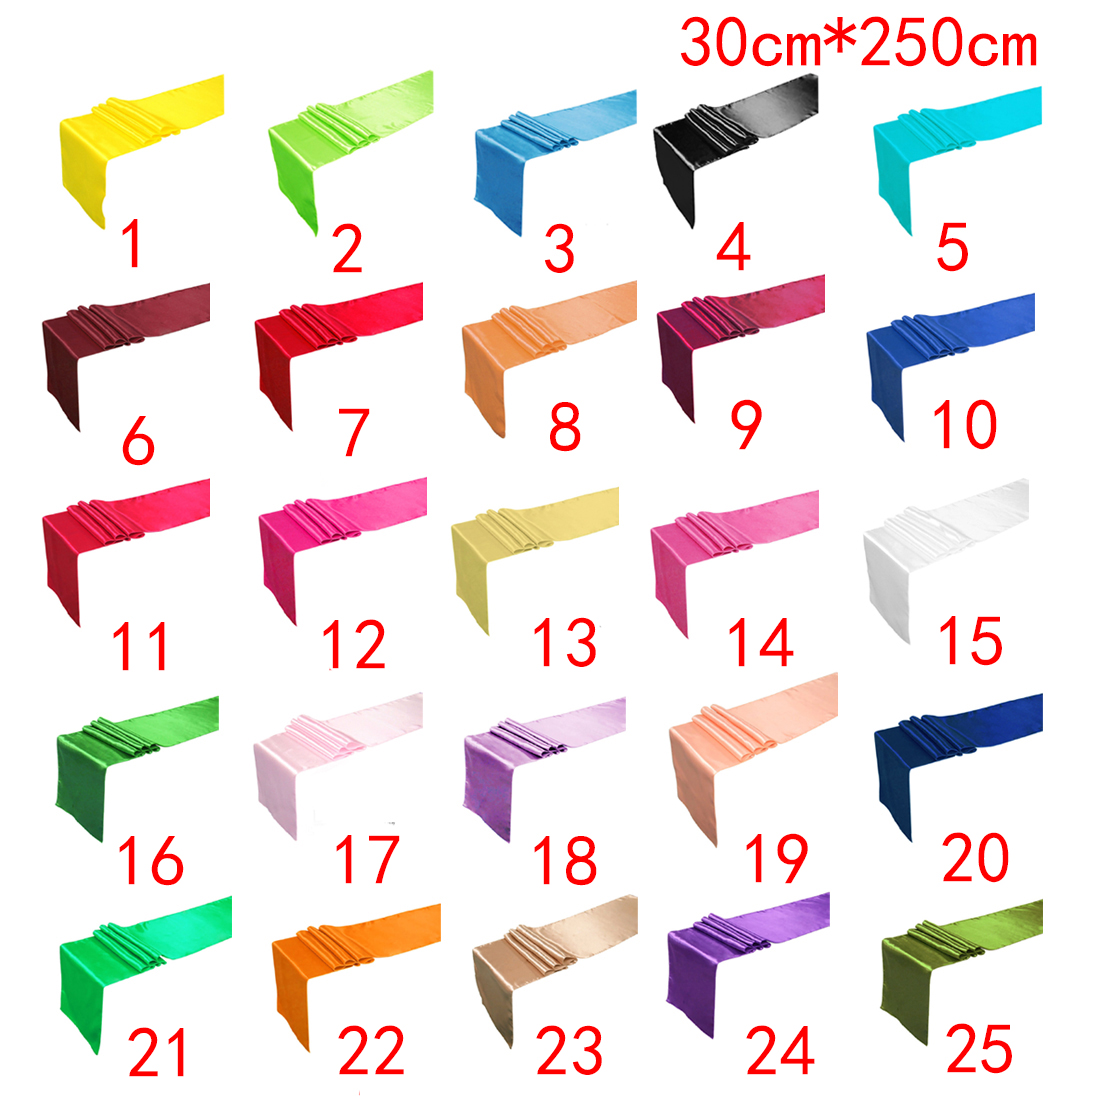 13 Colors 30*275cm Satin Table Runner For Wedding Engagement/Hotel Banquet/Fesival Decor